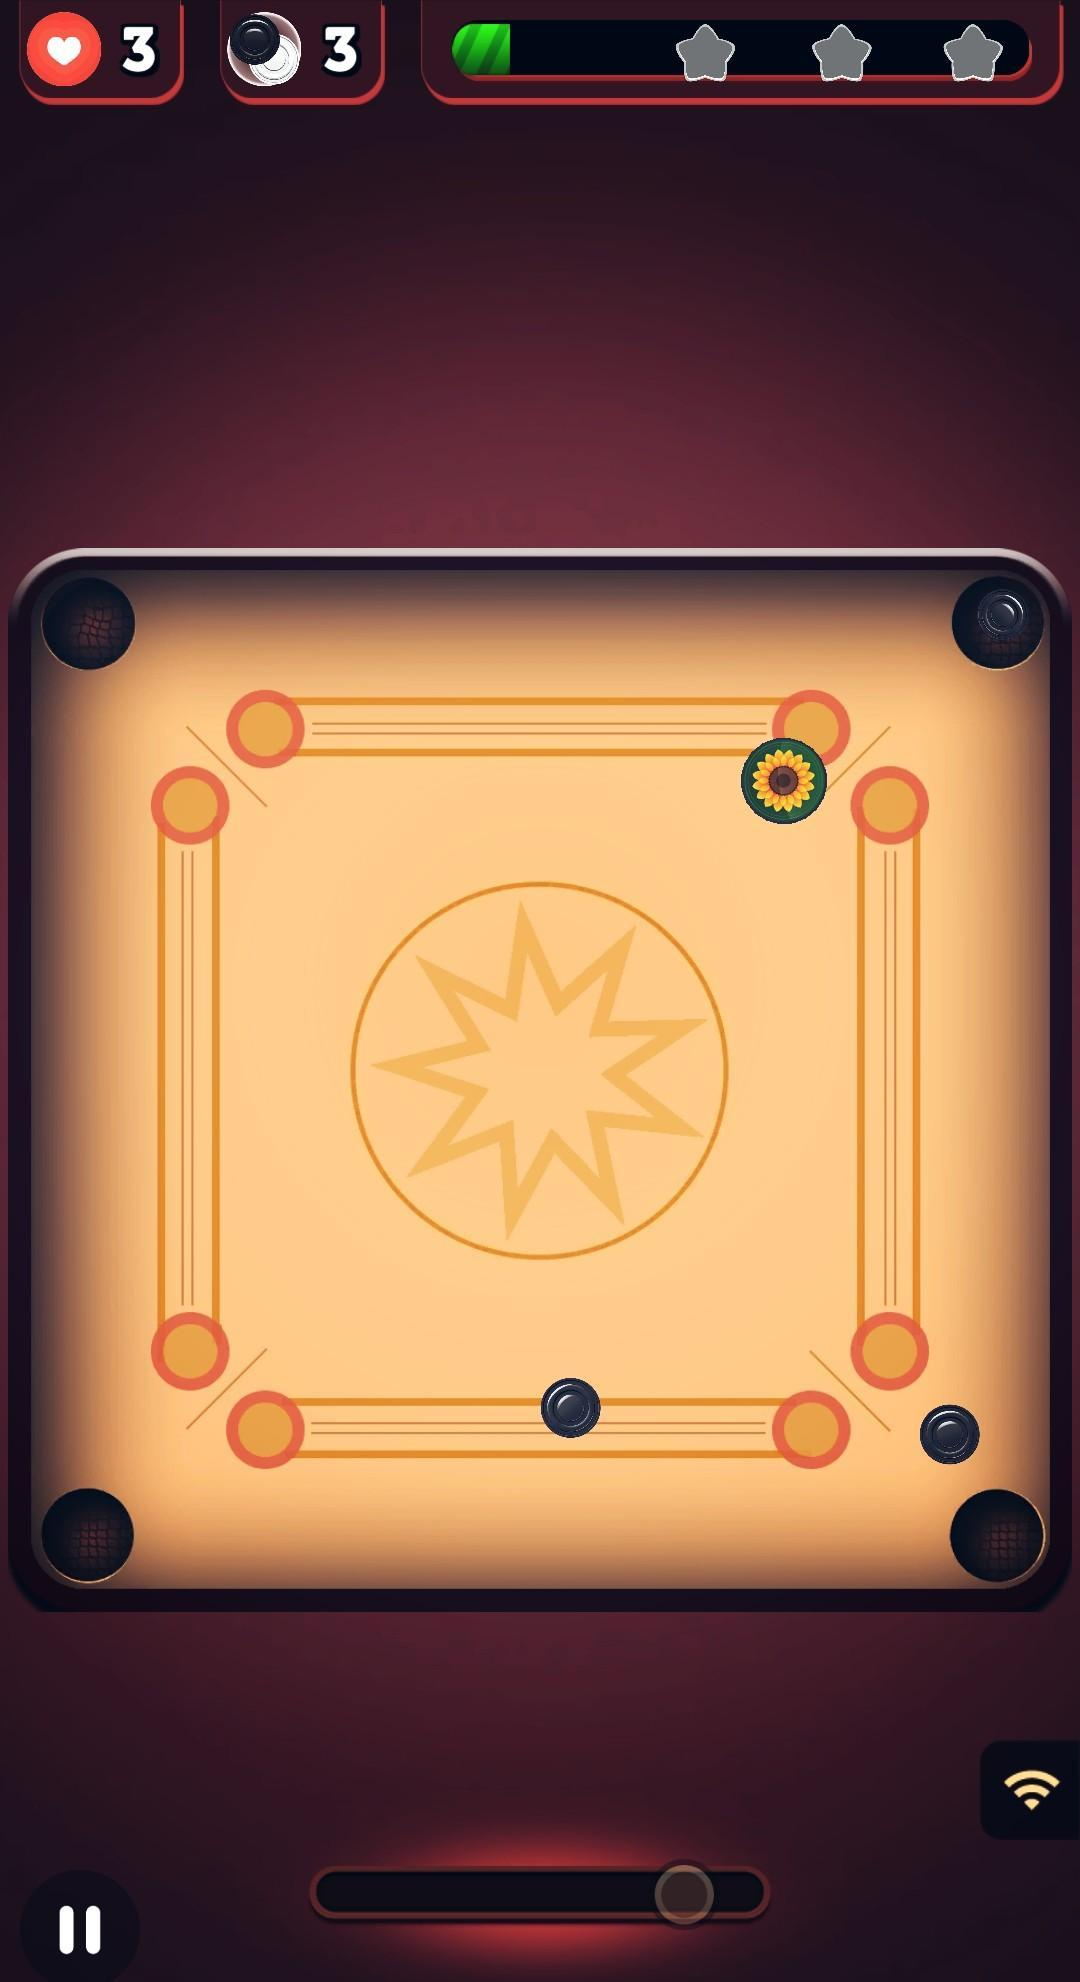 Carrom : Candy Carrom - A Carrom Board Game 4.0.2 Screenshot 5